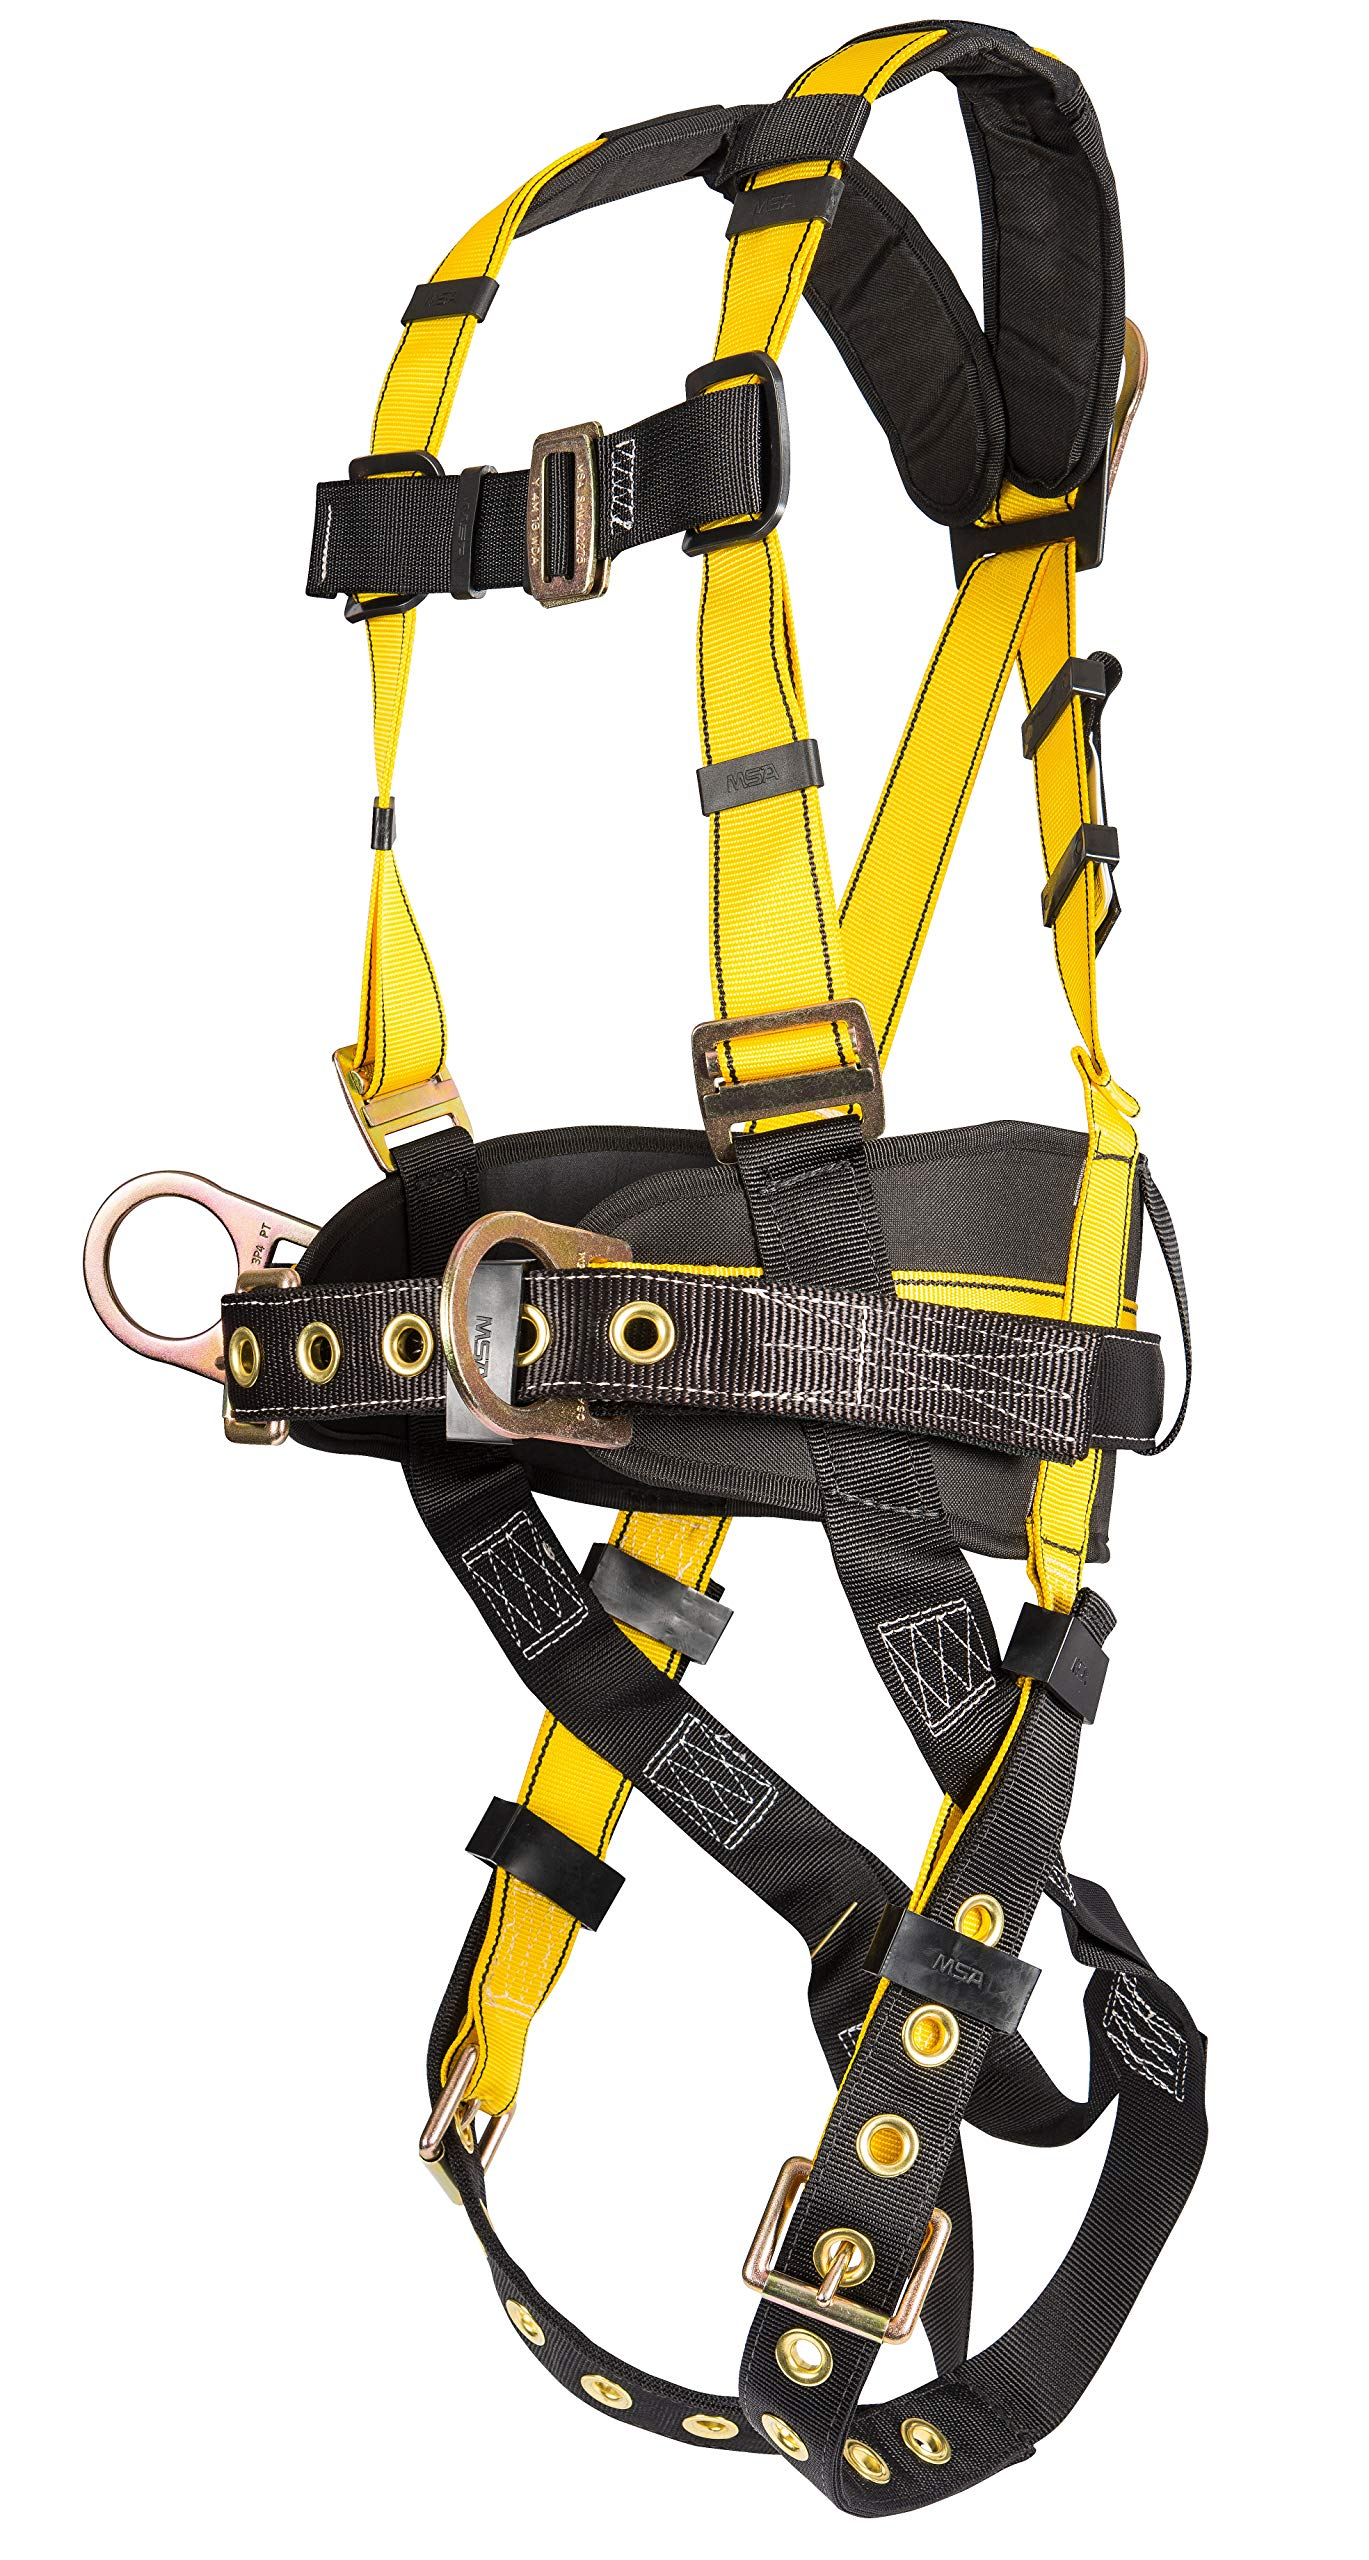 MSA 10077571 Workman Construction Harness with Back/Hip D-Rings, Tongue Buckle Leg Straps, Qwik-Fit Chest Strap Buckle, Integral Back Pad, Tool Belt and Shoulder Pads, Standard by MSA